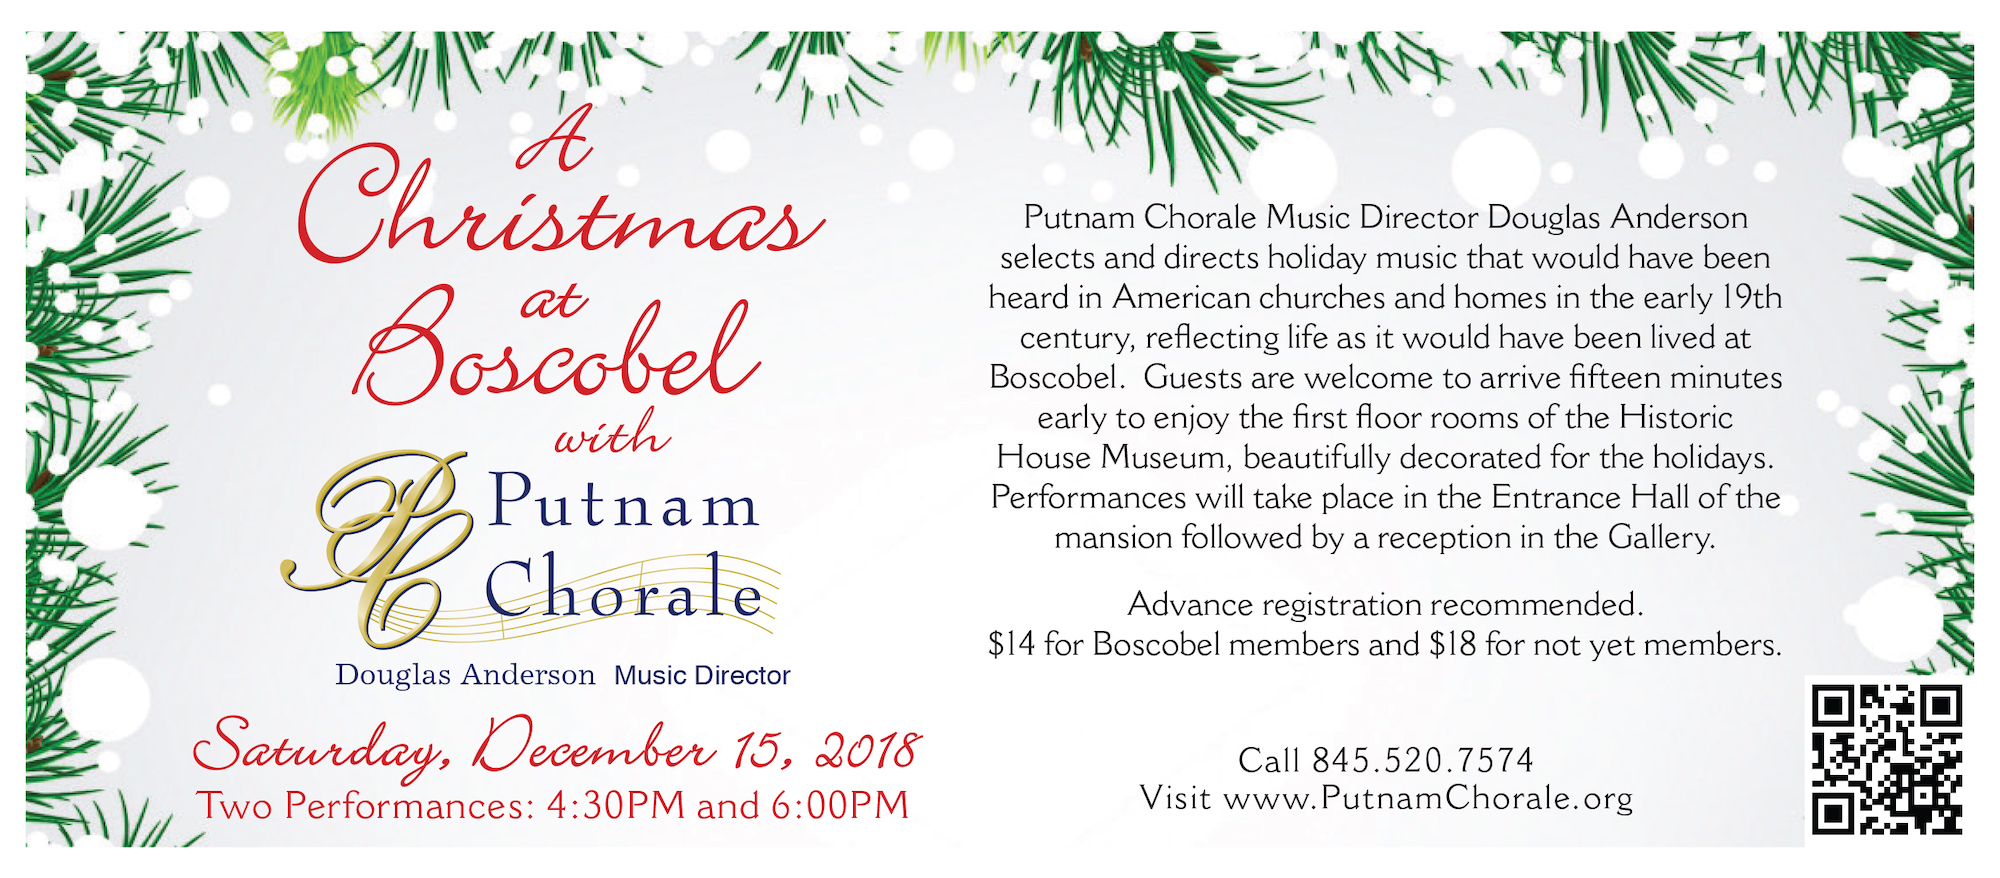 Christmas At Boscobel With The Putnam Chorale